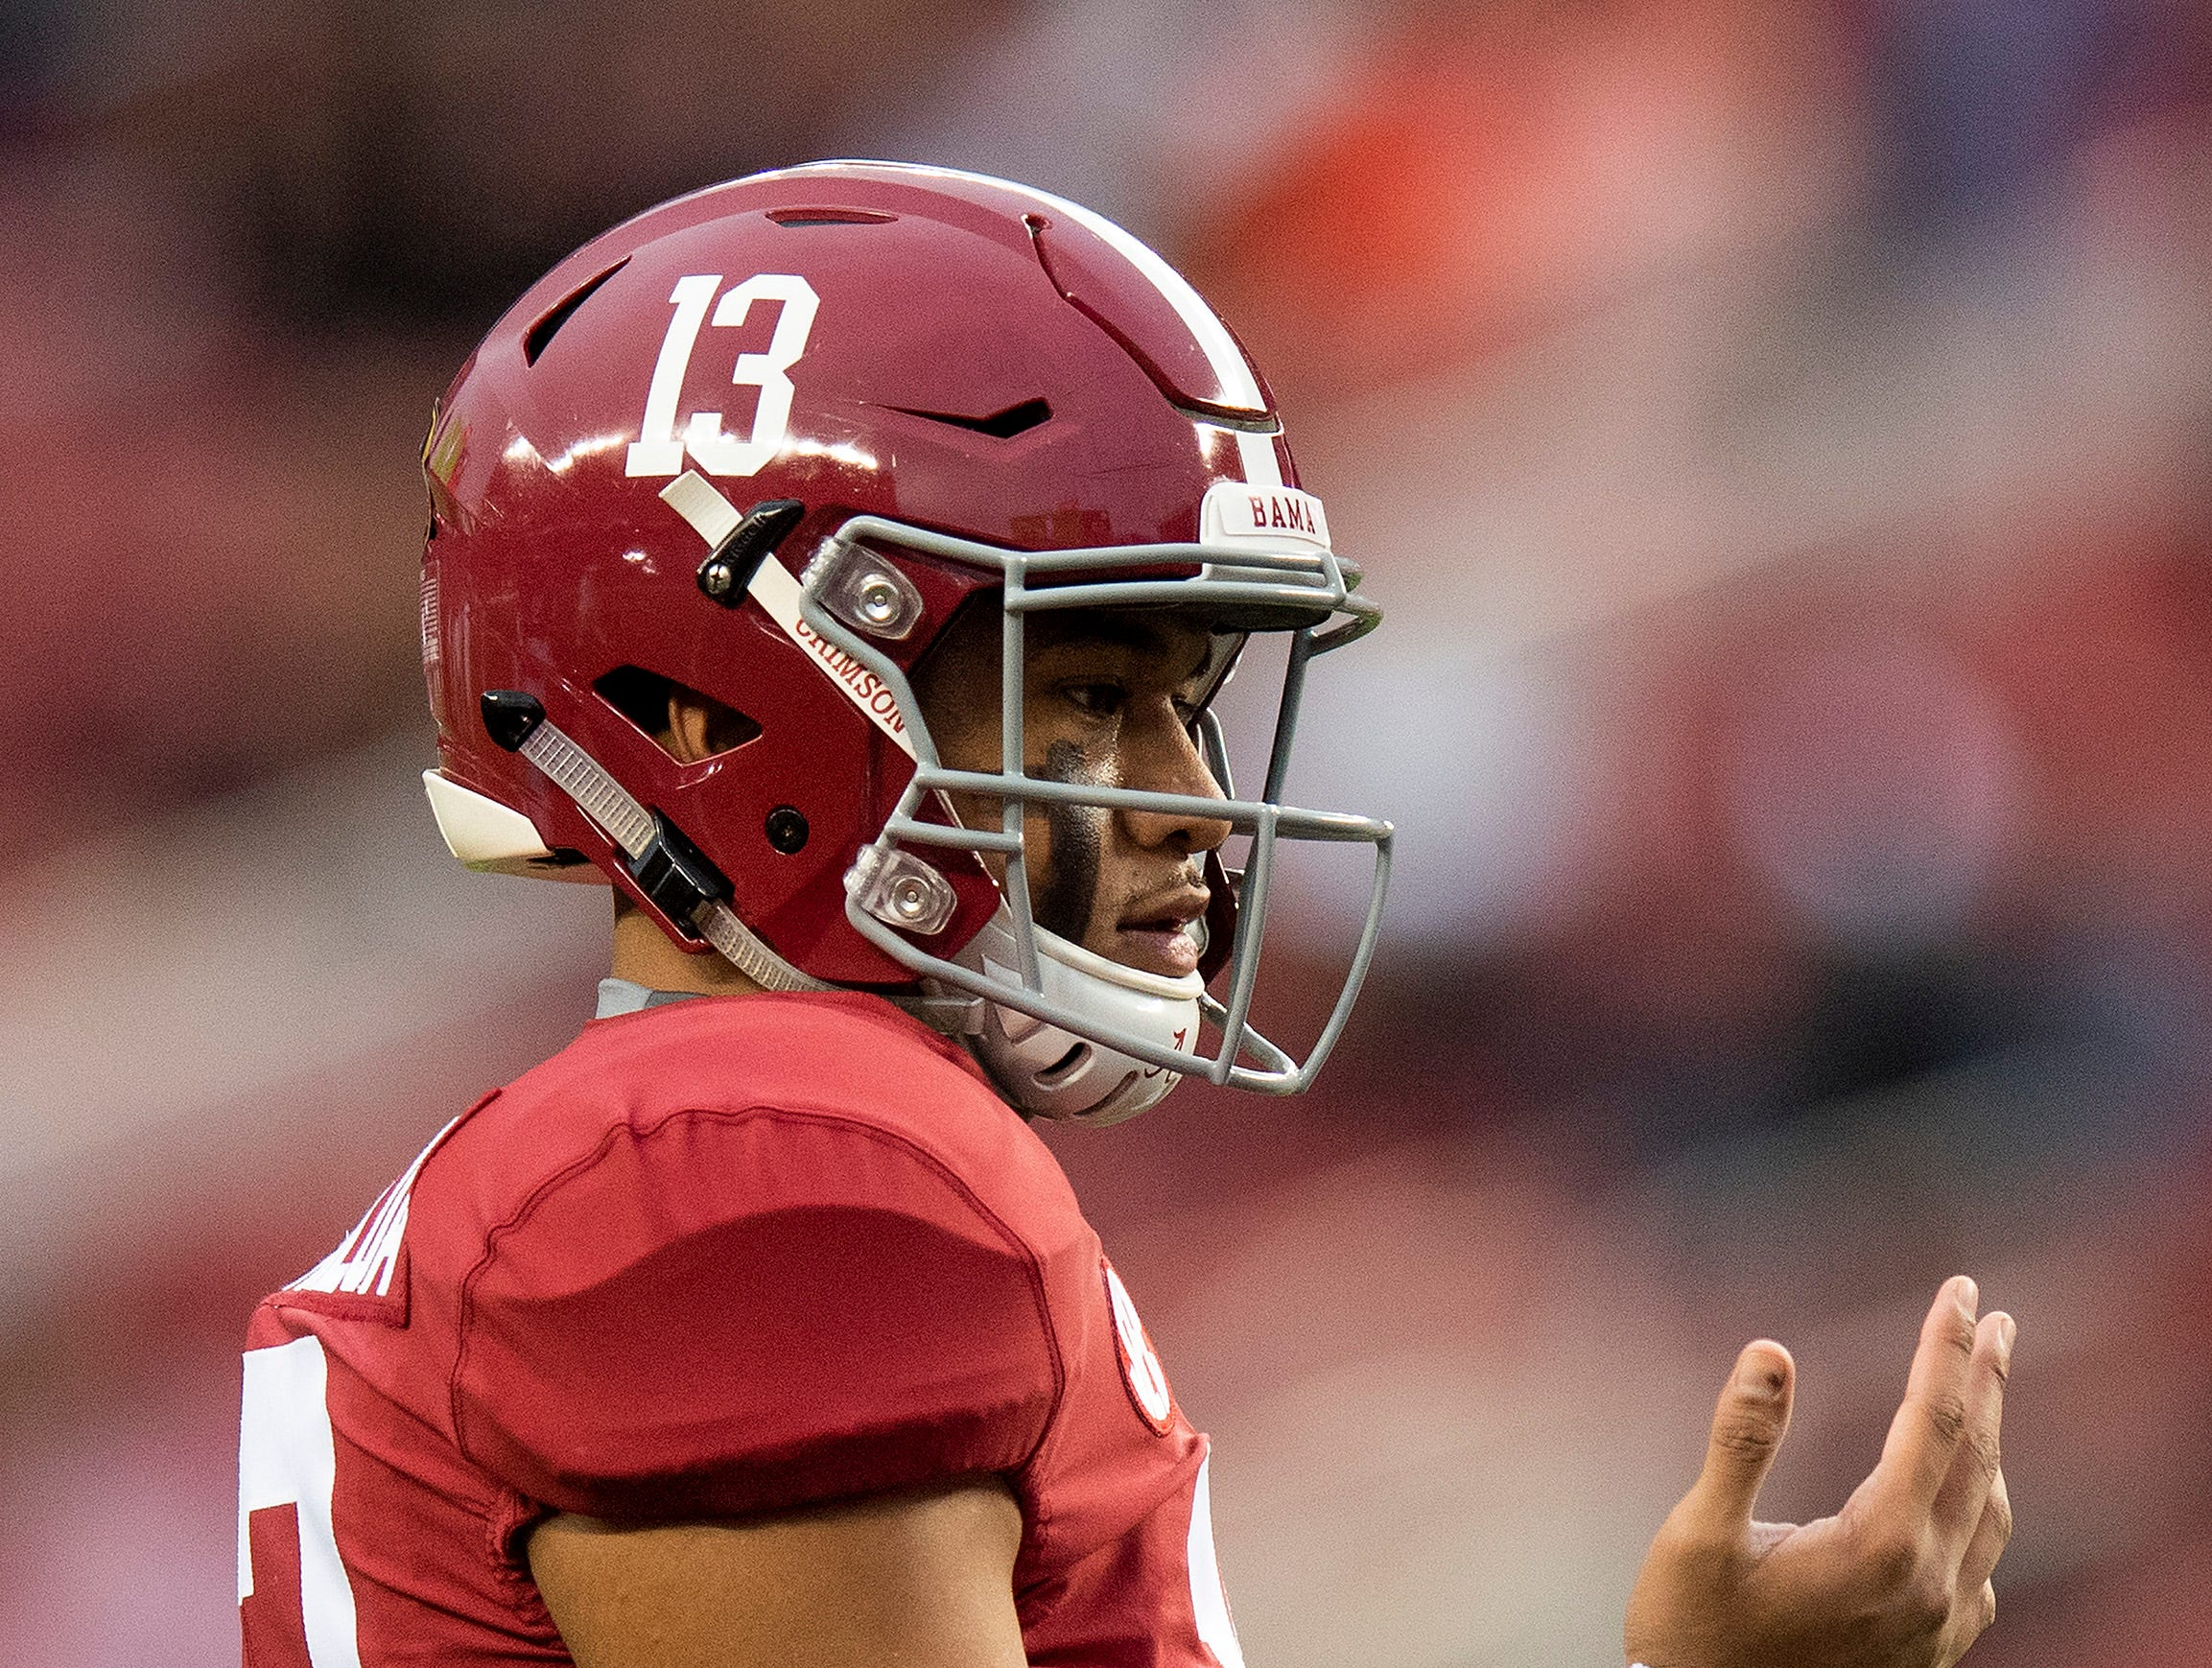 Alabama quarterback Tua Tagovailoa (13) before the College Football Playoff National Championship game at Levi's Stadium in Santa Clara, Ca., on Monday January 7, 2019.